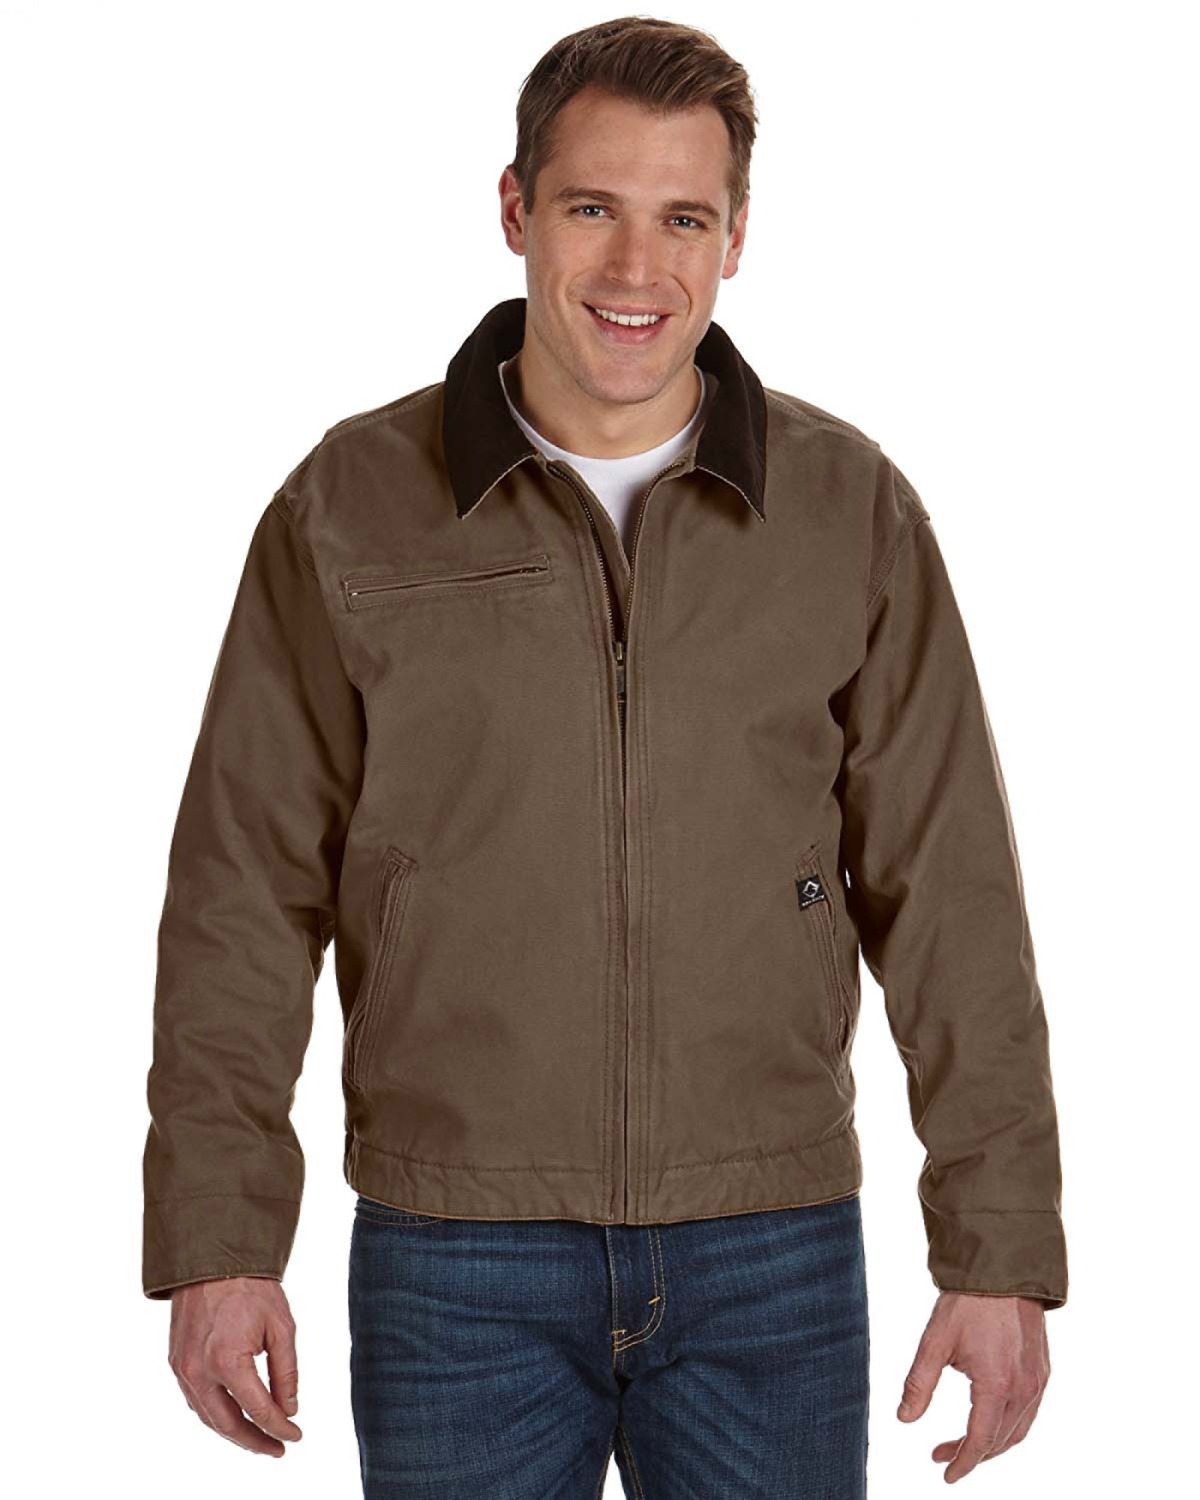 Dri Duck DD5087 - Outlaw Jacket